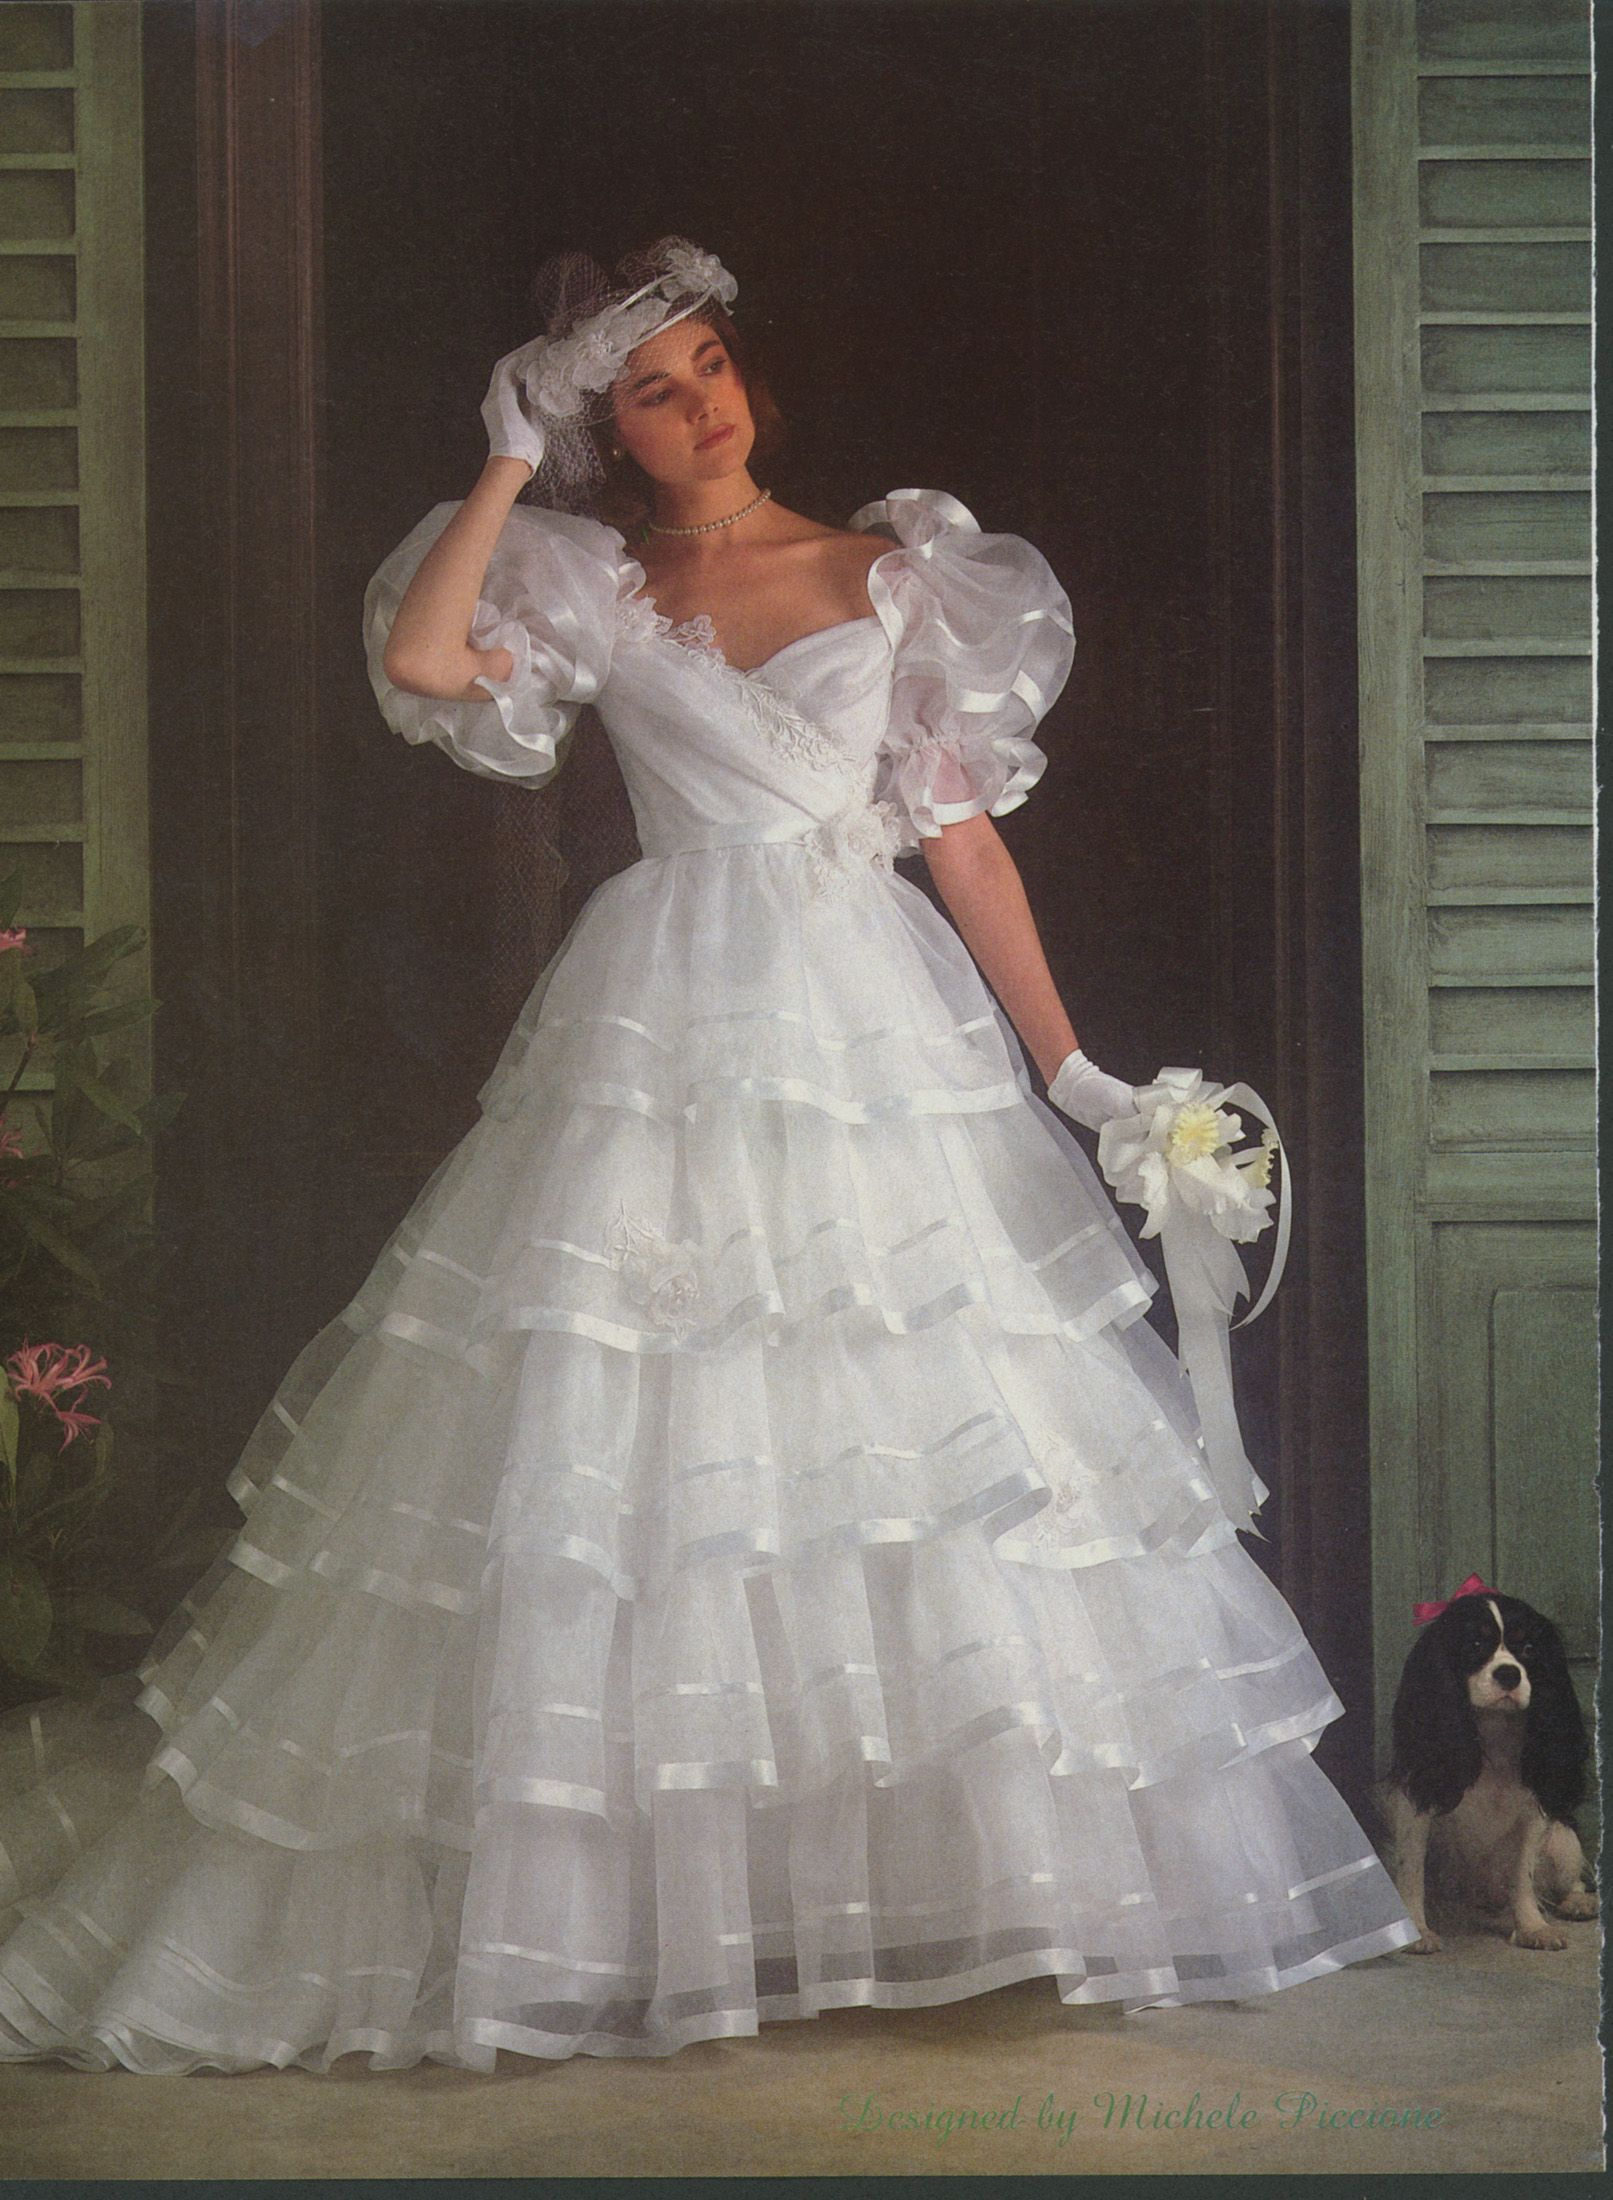 Brides Dec 1984/Jan 1985 | 1980\'s wedding dress | Pinterest ...